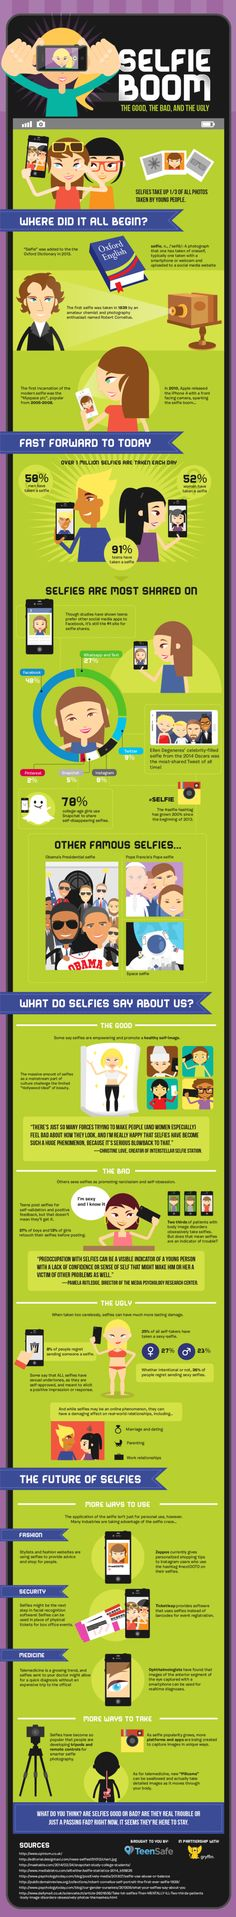 Selfie Boom: The Good, The Bad, and the Ugly   #infographic #Selfie #SocialMedia